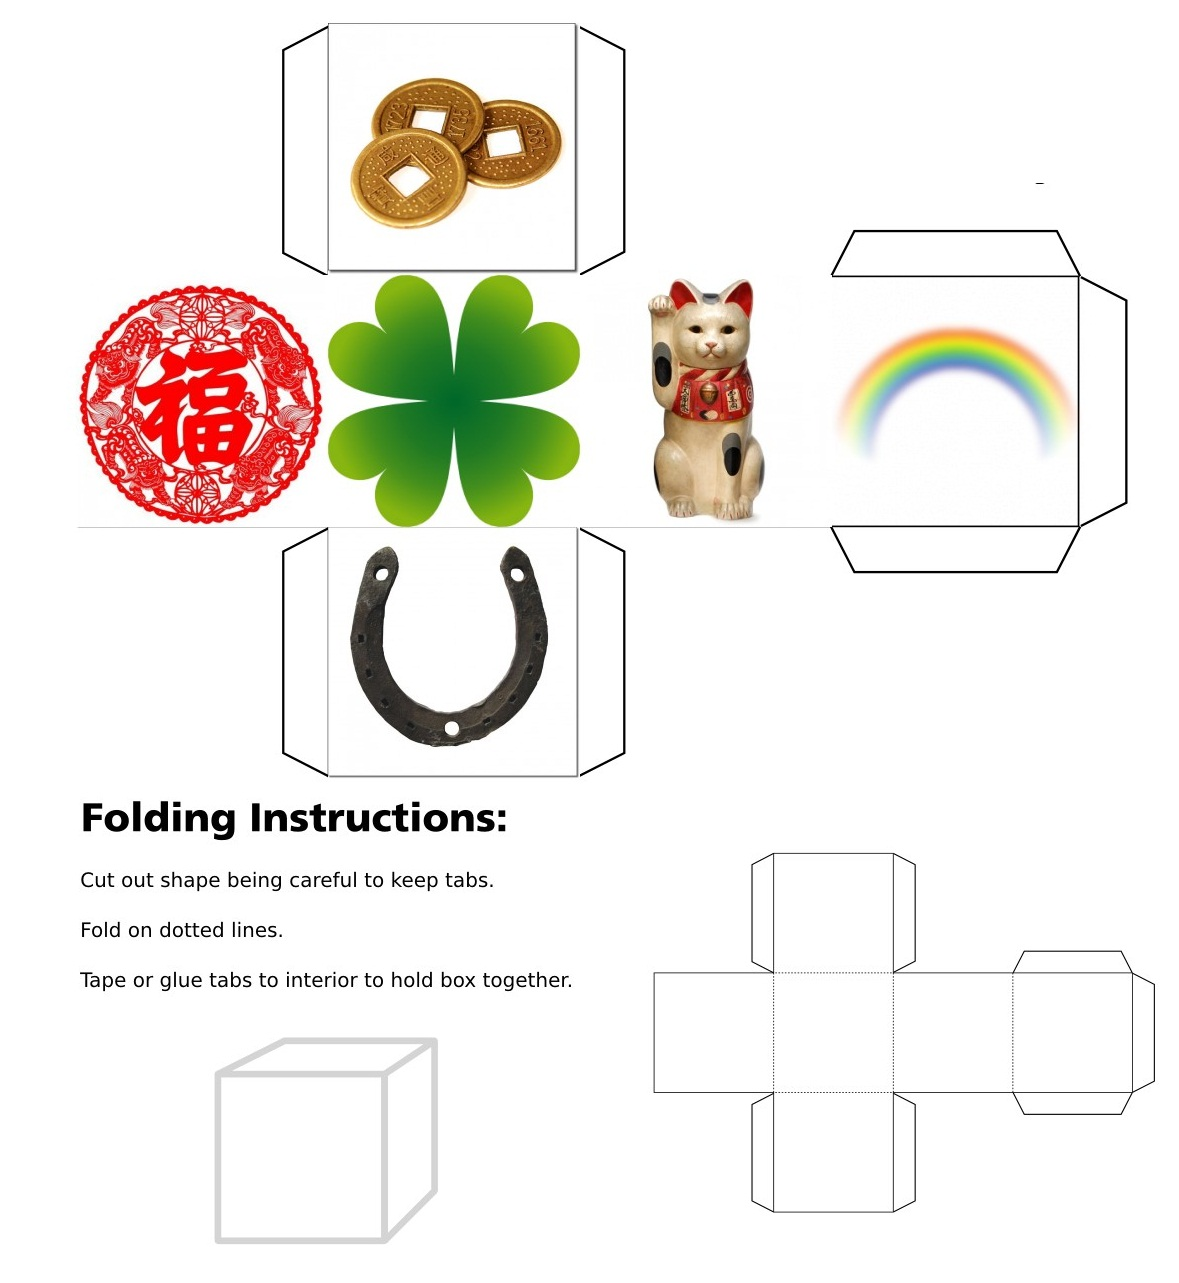 3D cube, cube, dice, luck, good luck, Chinese coins, Chinese characters, Horse Shoe, Shamrock, Lucky Dice, Lucky Symbols, Maneki Neko. Four Leaf Clover, Clover